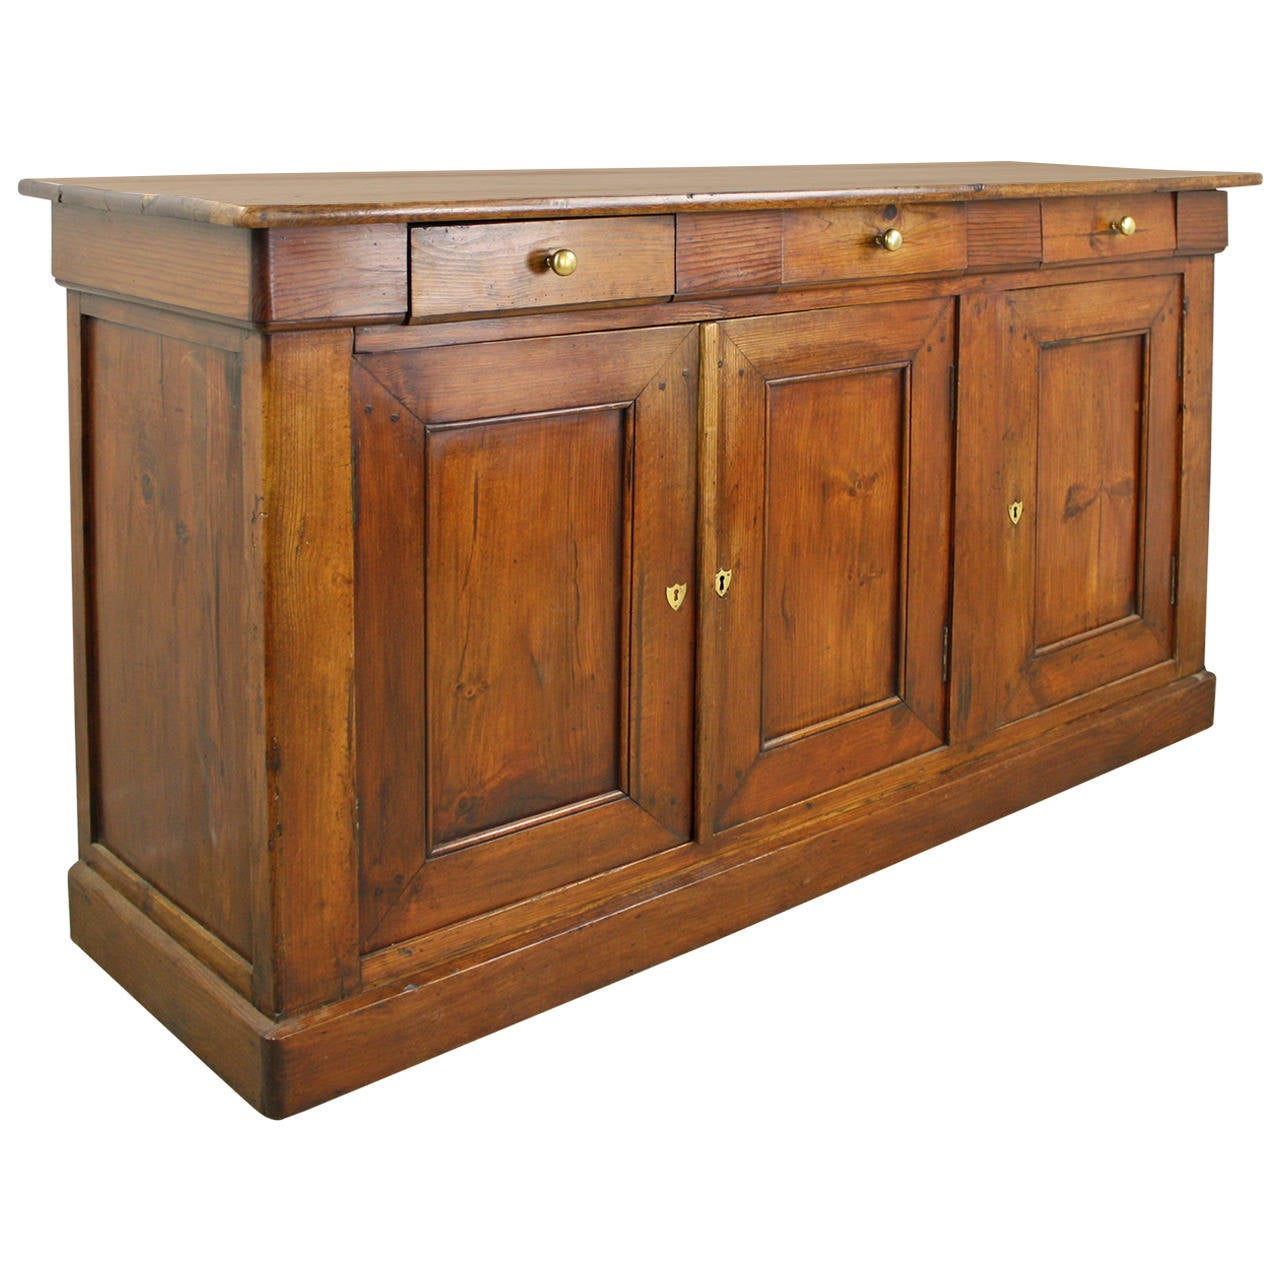 antique french rich pine enfilade at 1stdibs. Black Bedroom Furniture Sets. Home Design Ideas